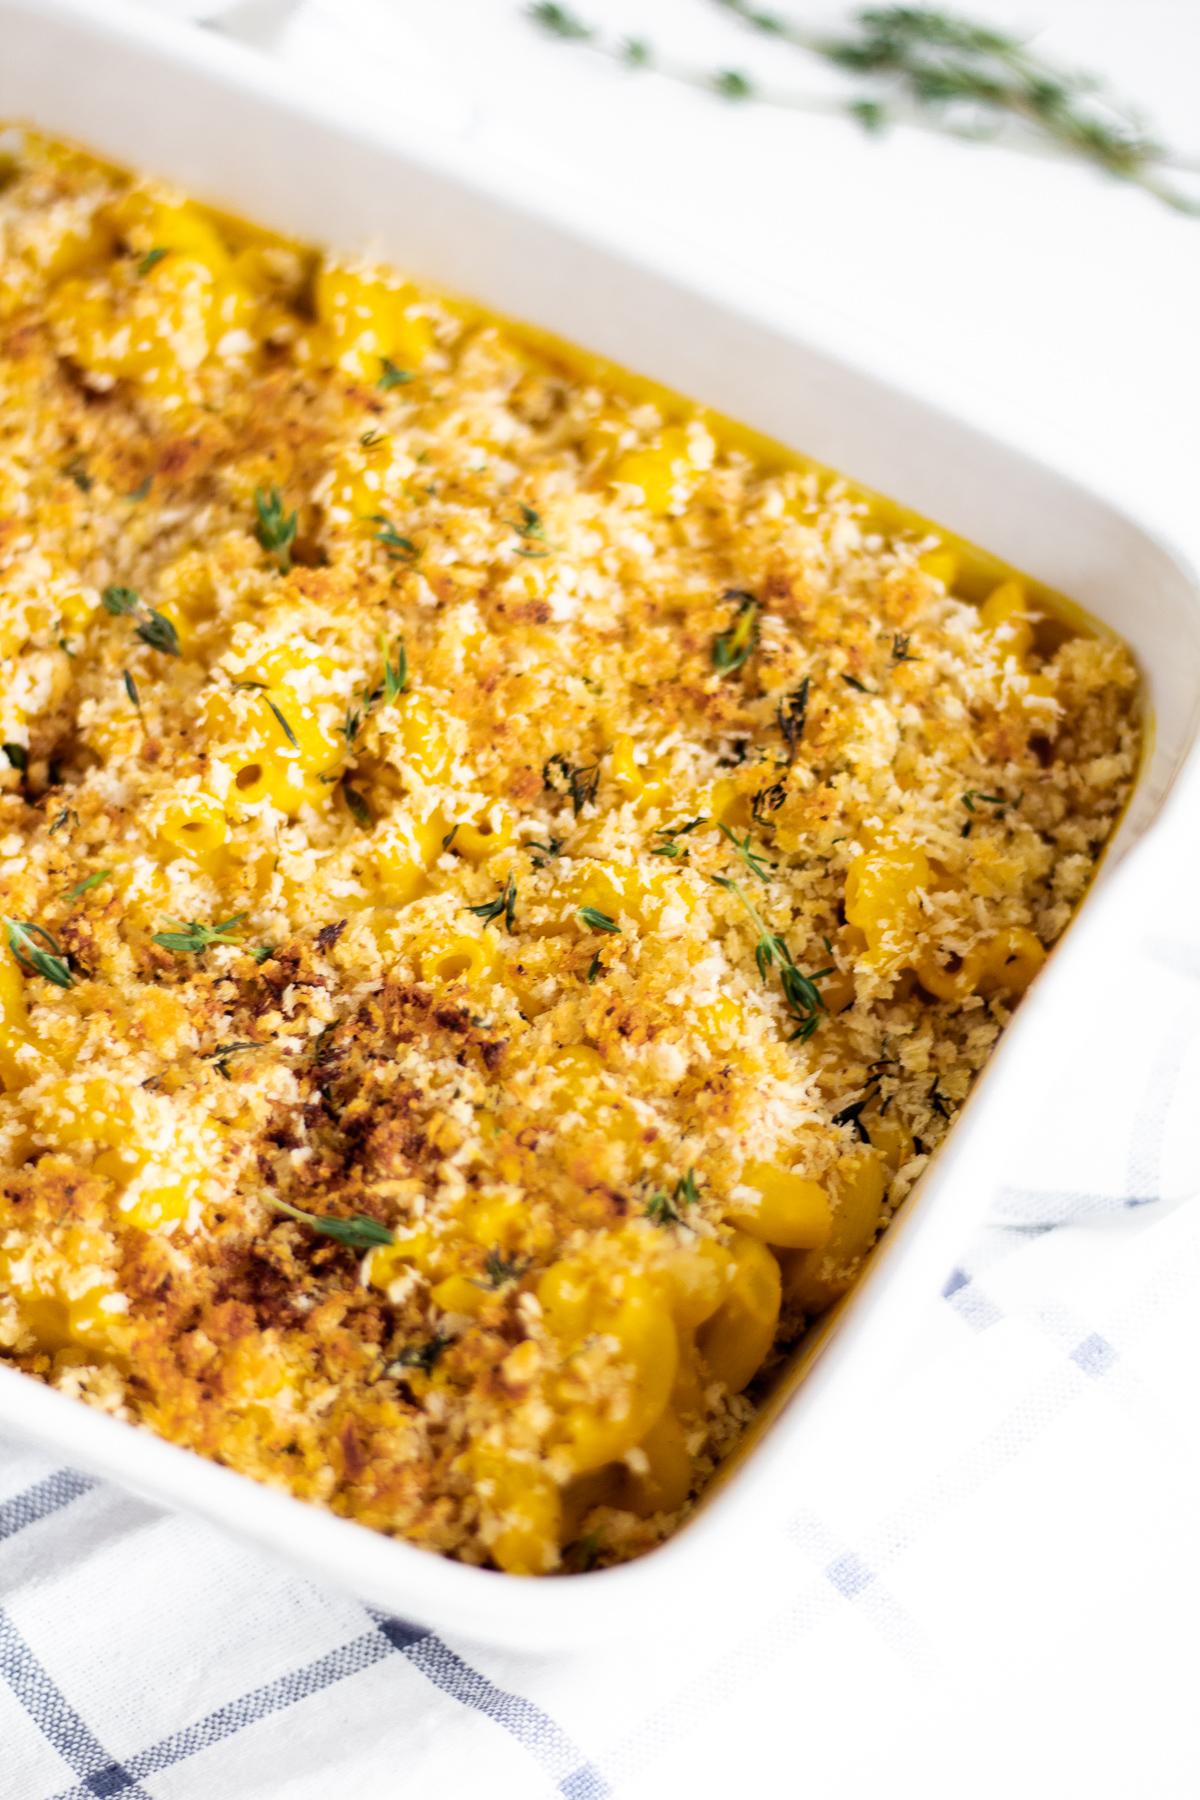 AMAZING Vegan Mac 'n' Cheese - No Nuts!